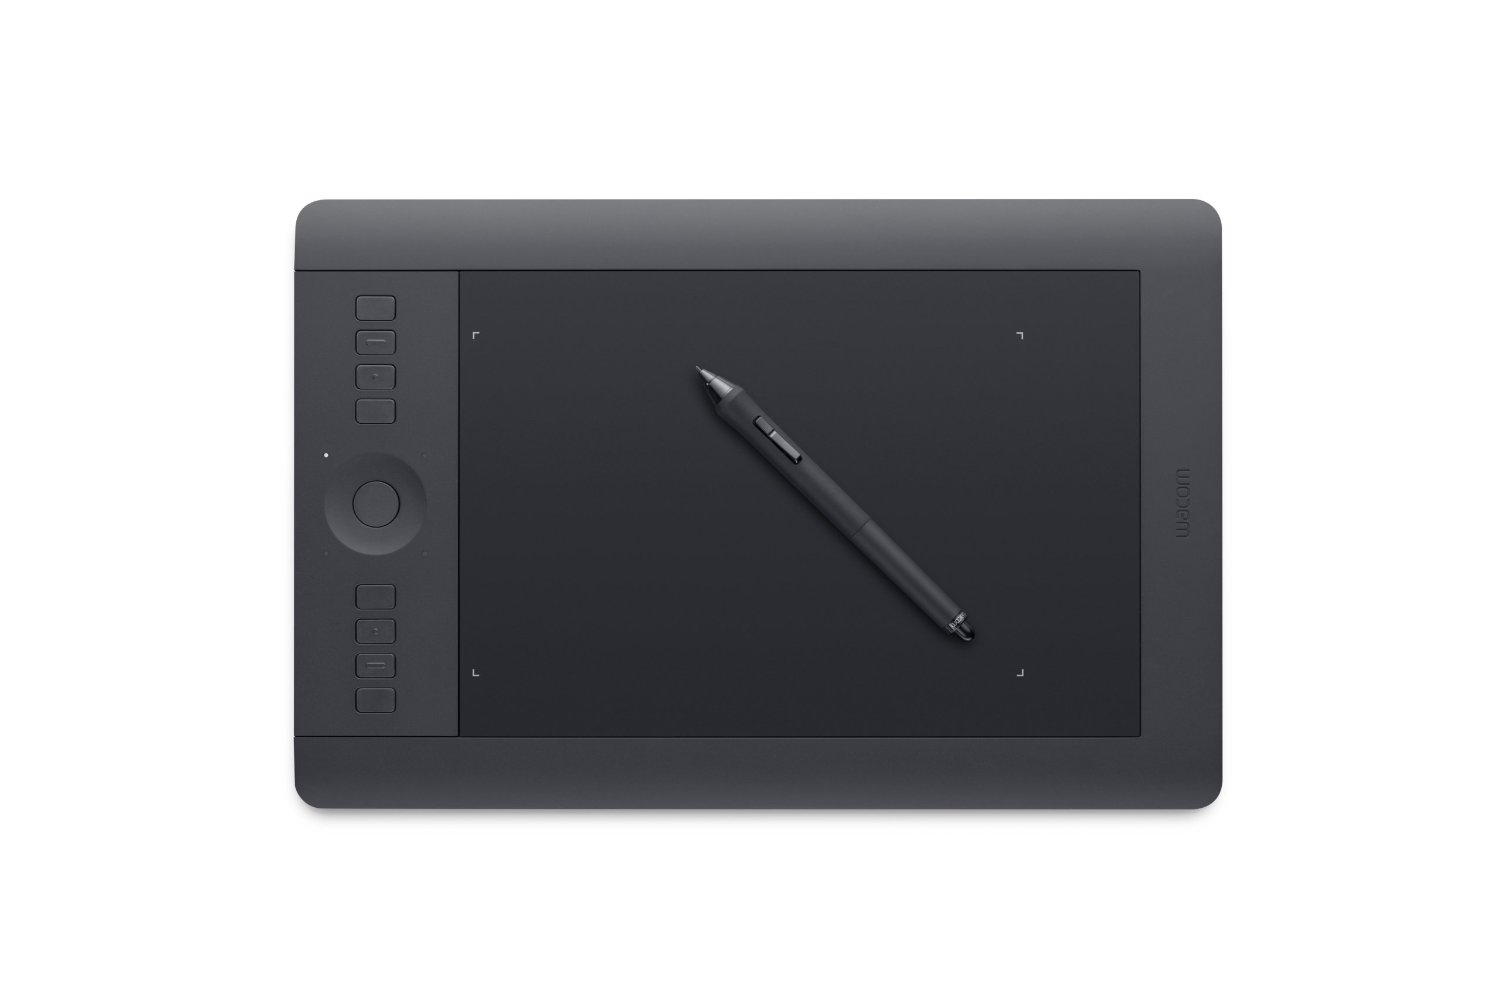 Intuos tablet for digital painting